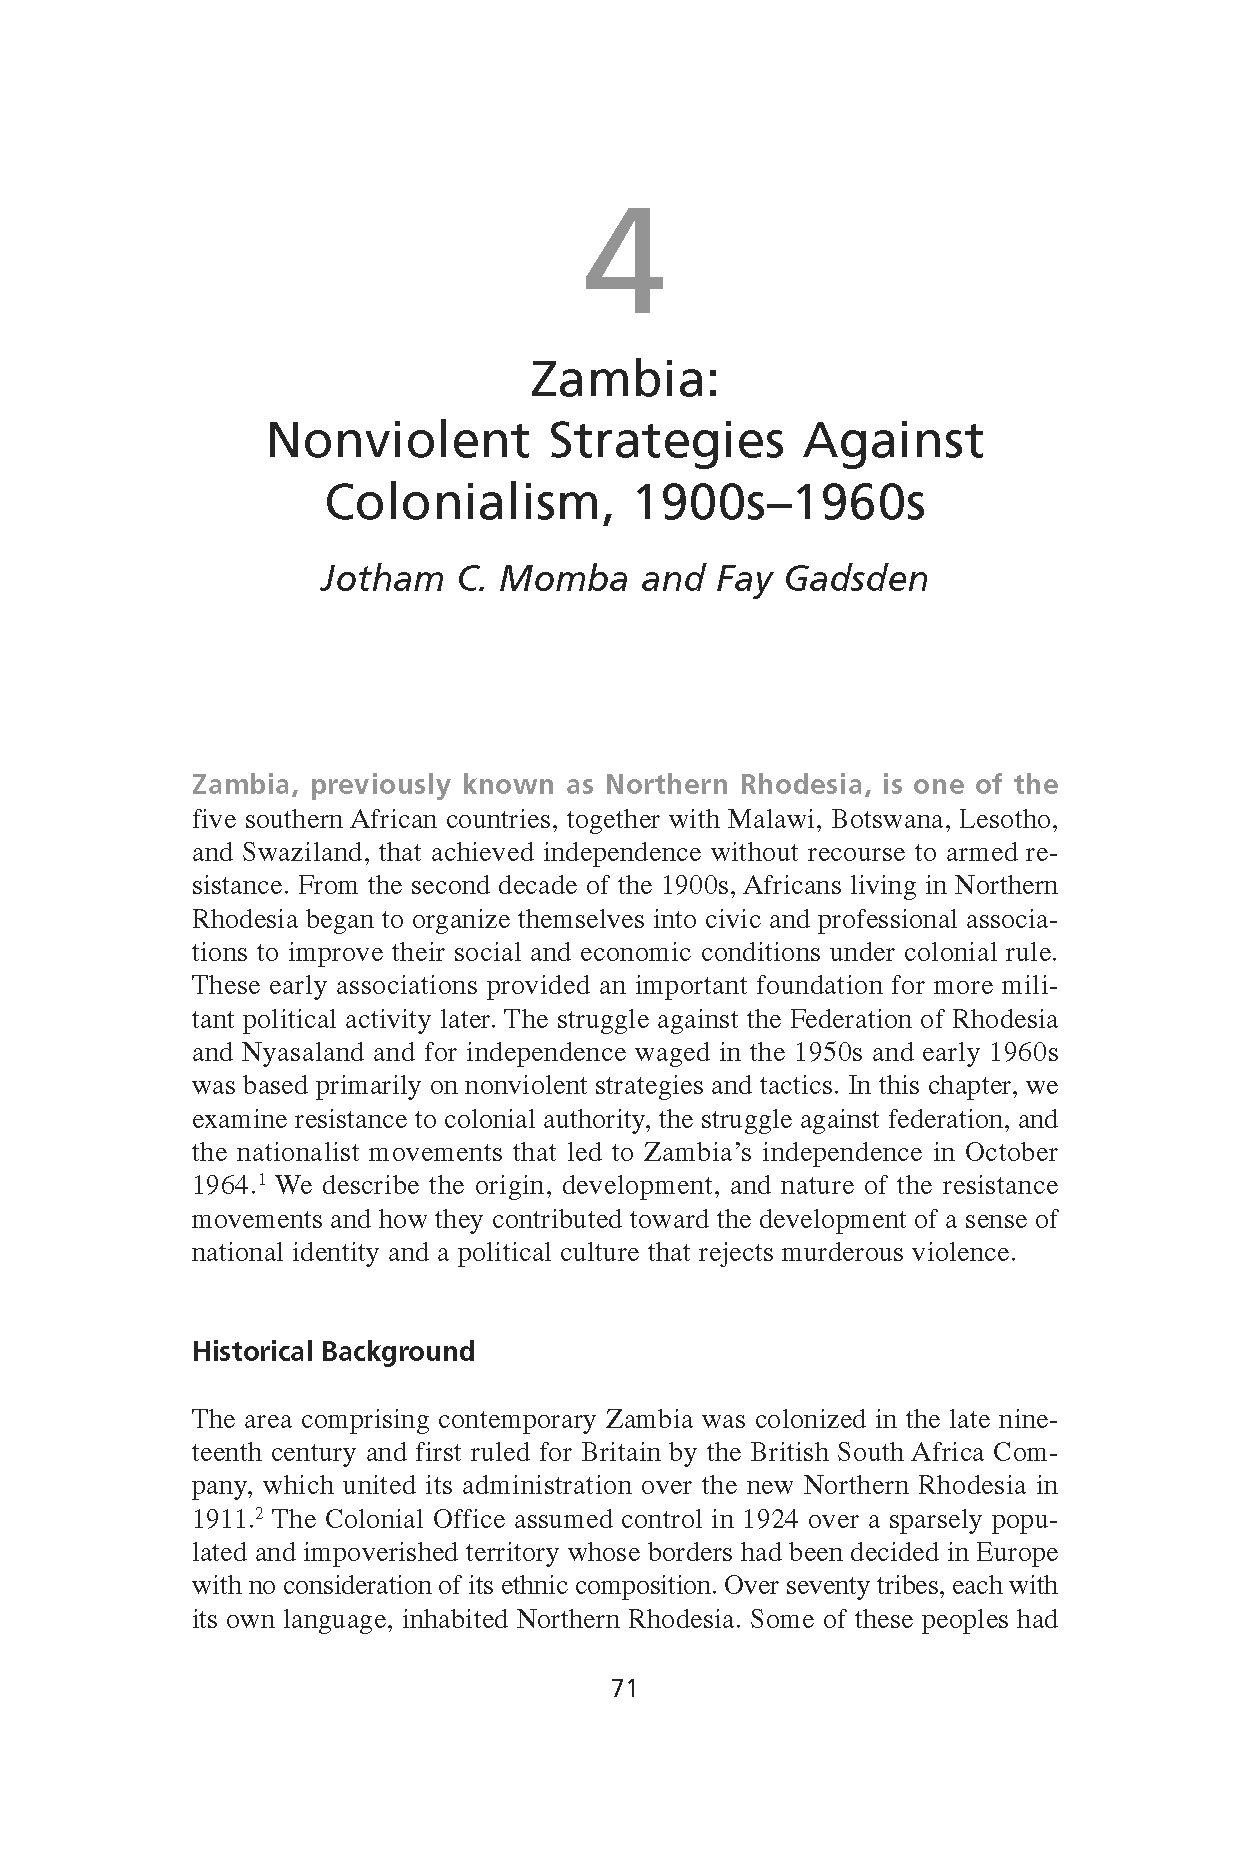 Zambia: Nonviolent Strategies Against Colonialism, 1900s-1960s (Chapter 4 from 'Recovering Nonviolent History')